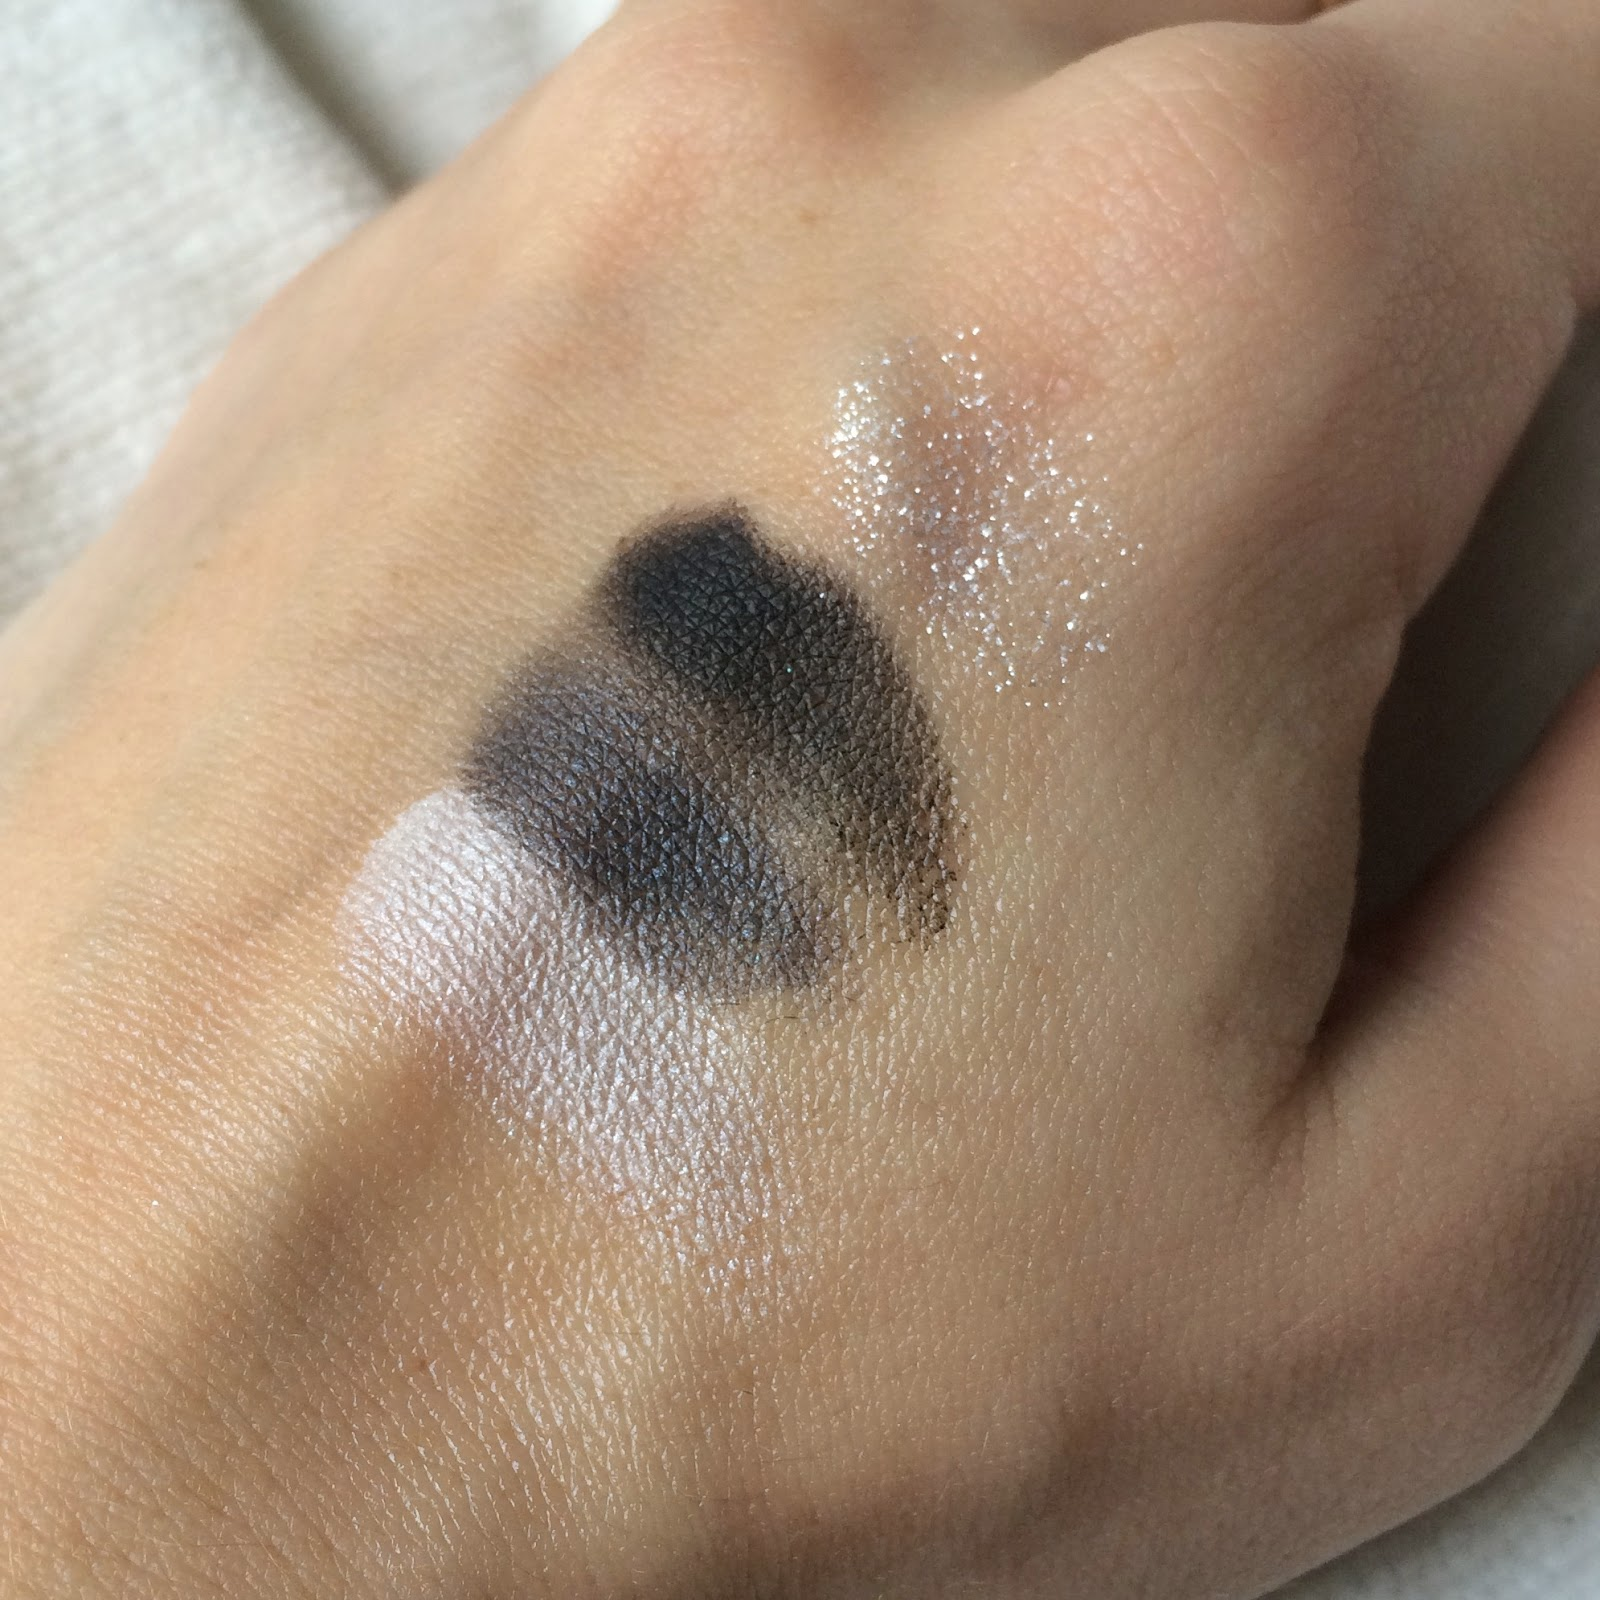 Bourjois-Quad-Smoky-Stories-eyeshadow-grey-and-night-swatch